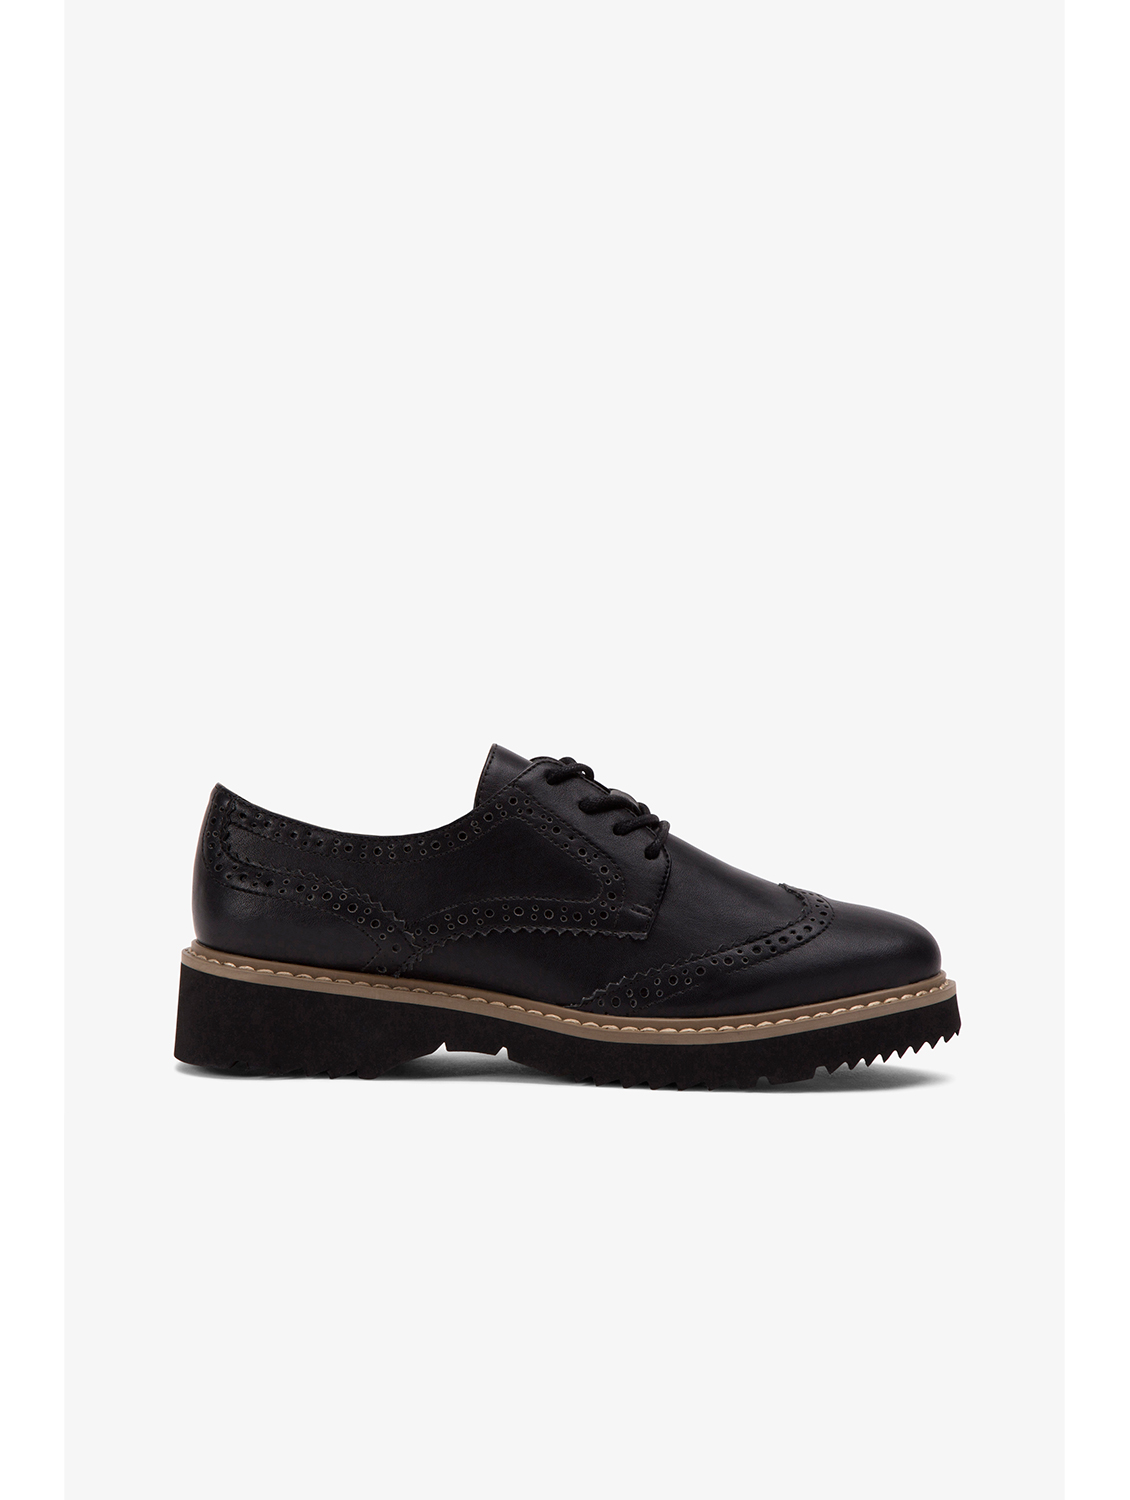 FW16-wander-atwater-black-1